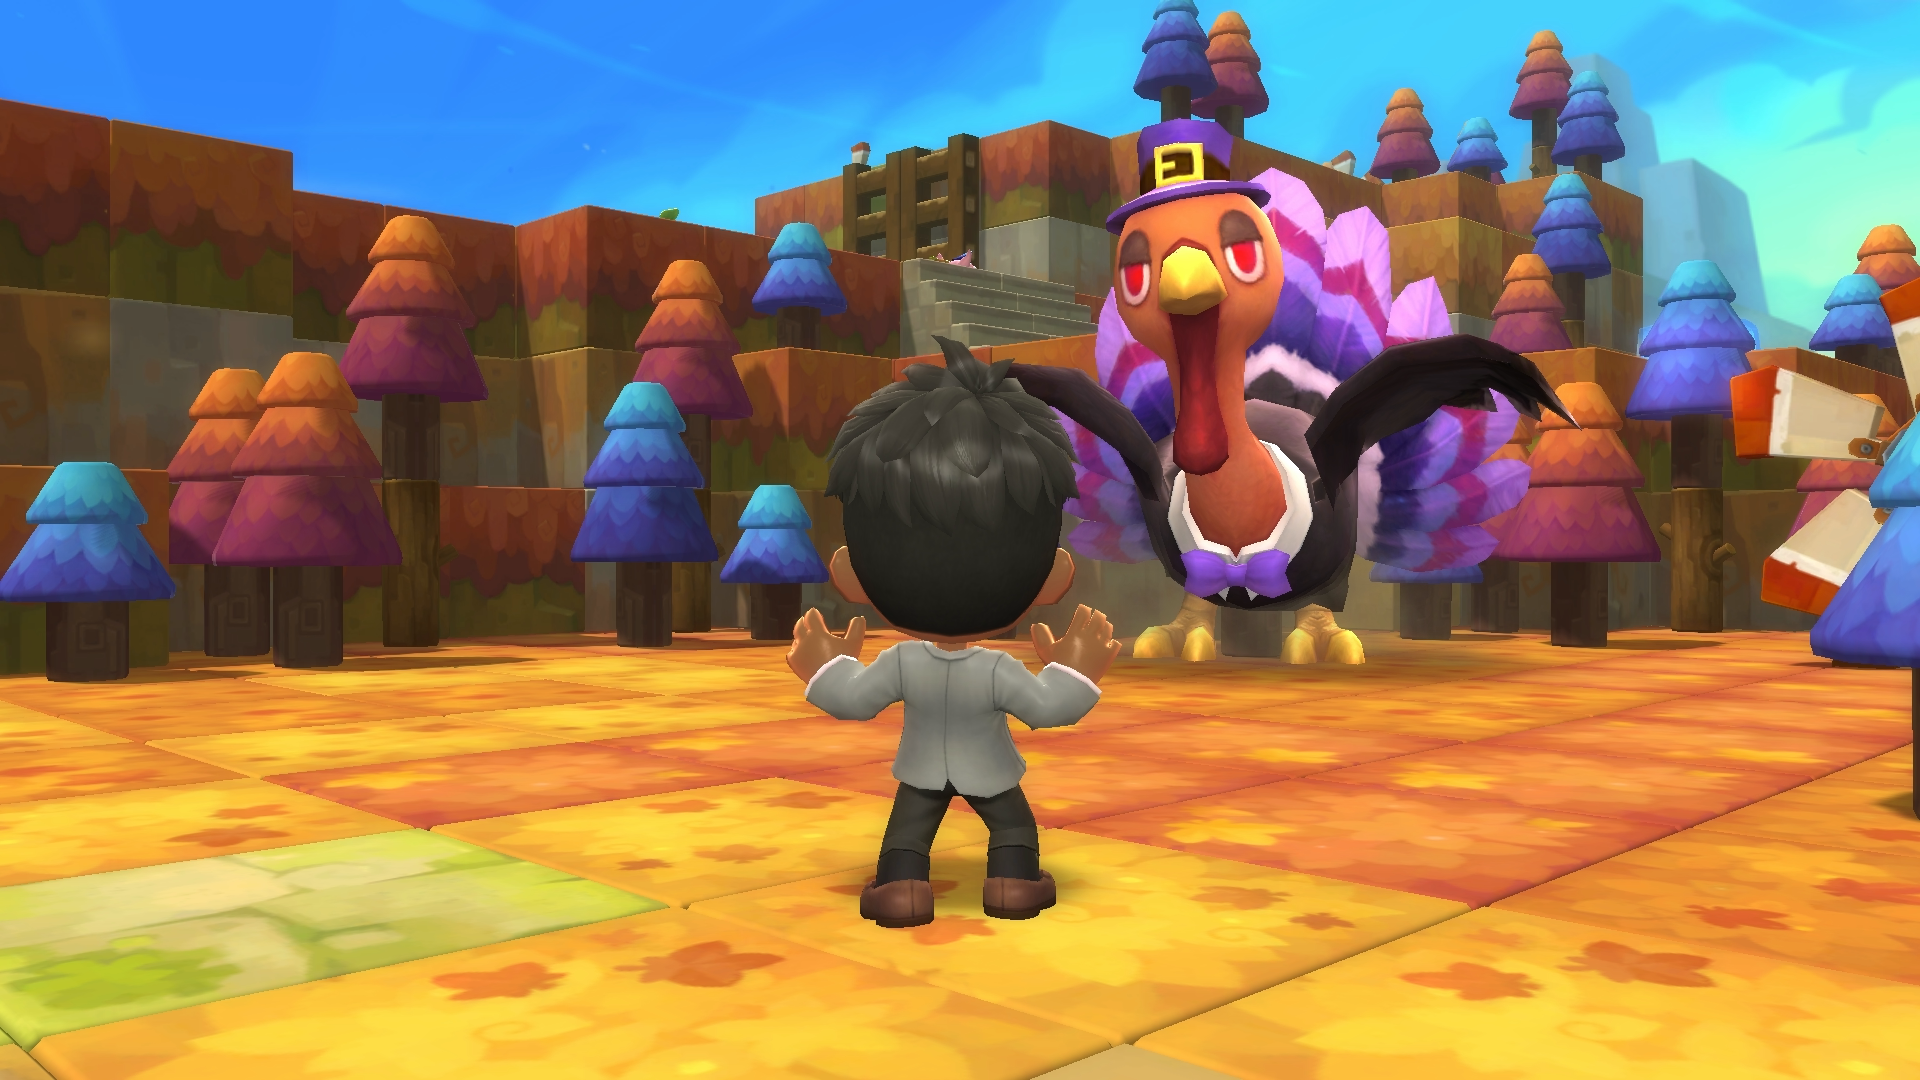 MapleStory 2 Gives Thanks to Players with Chaos Rising Updates and